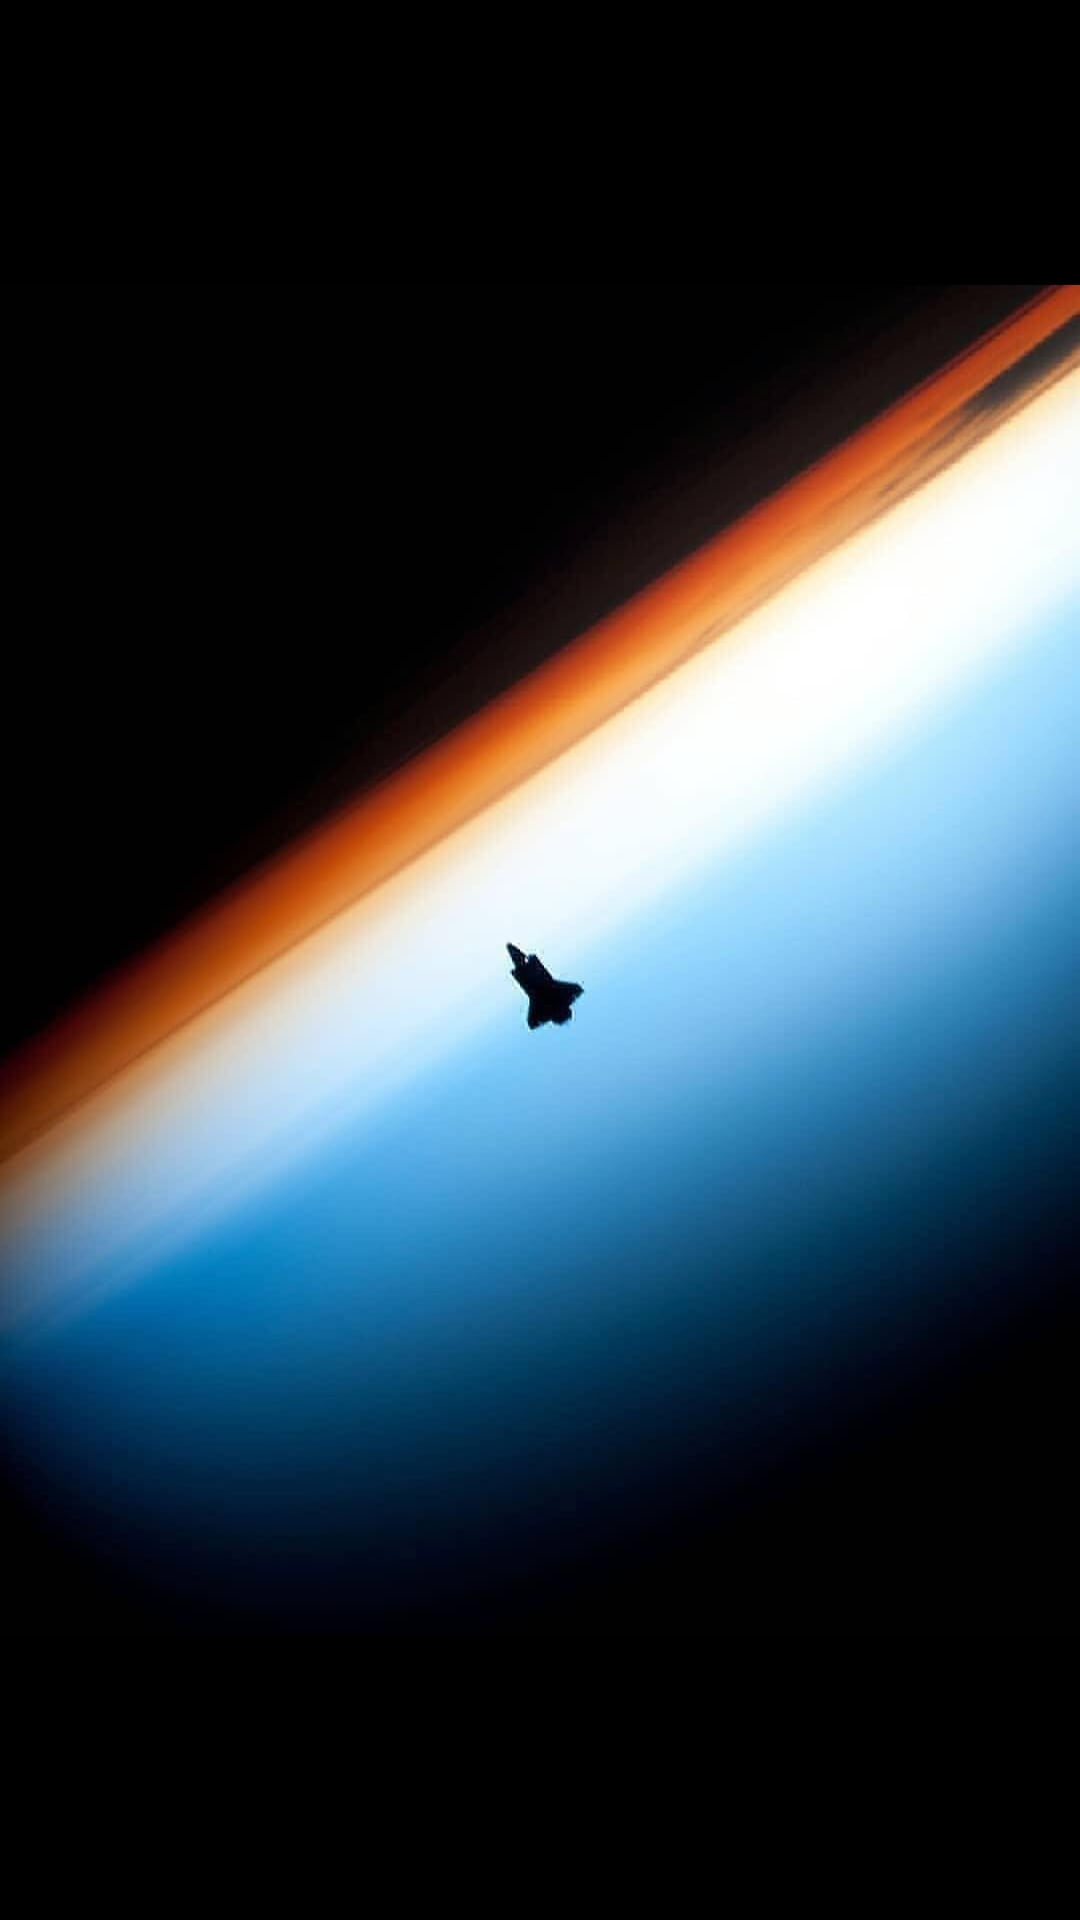 Space Shuttle Endeavor Photographed from the International Space Station